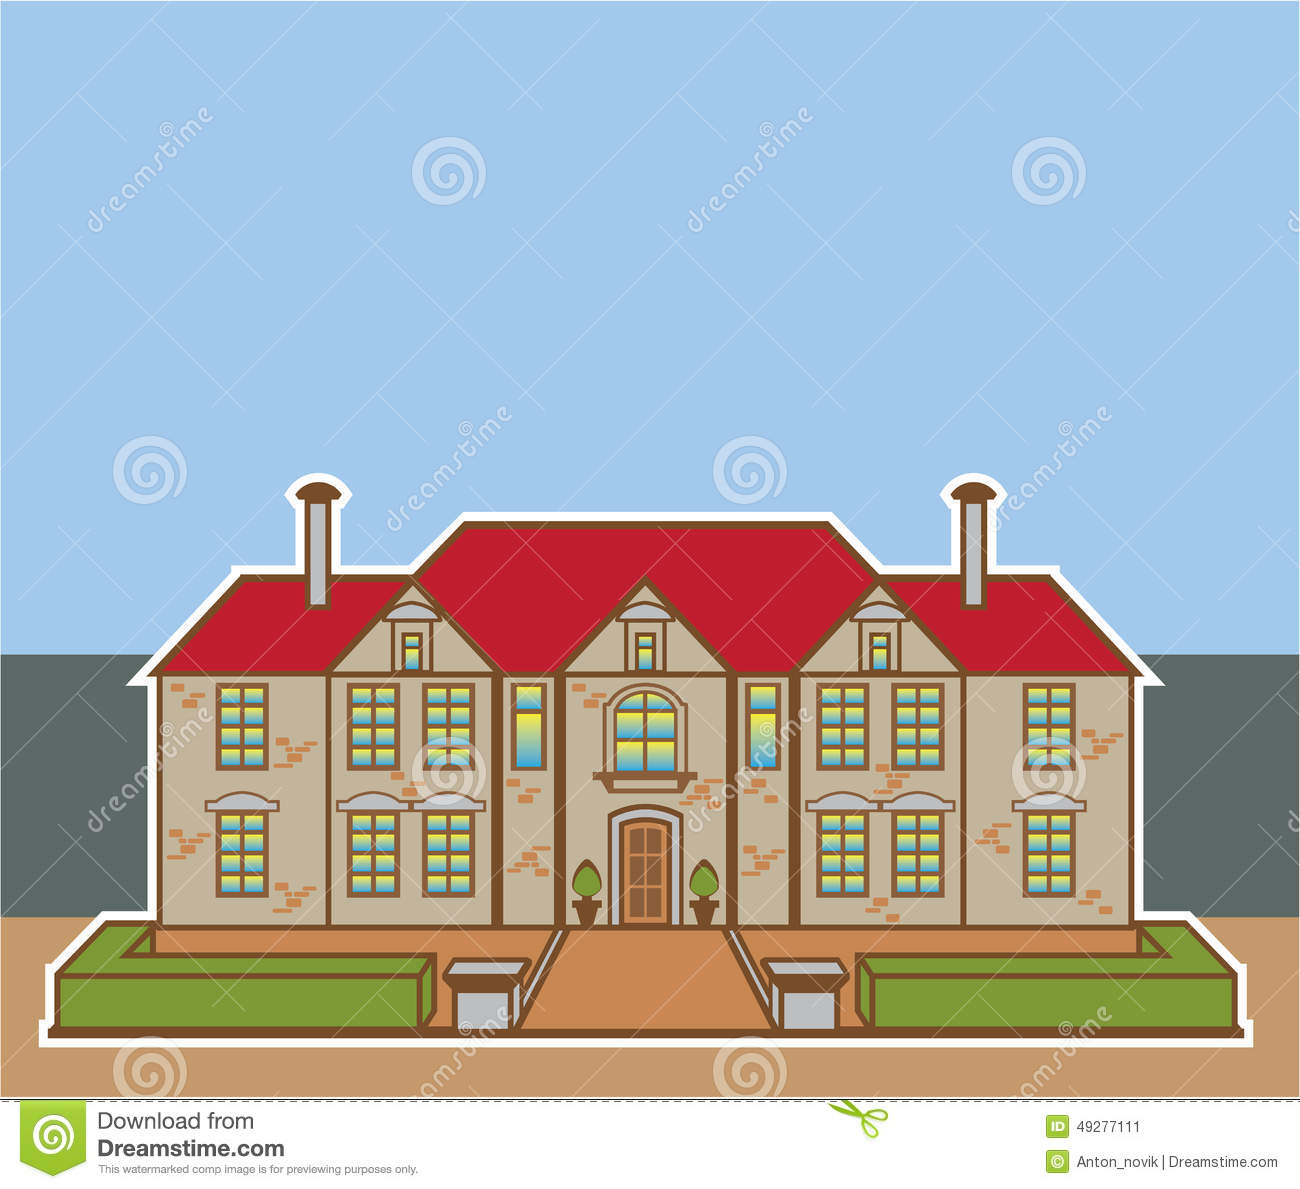 Mansions clipart - Clipground